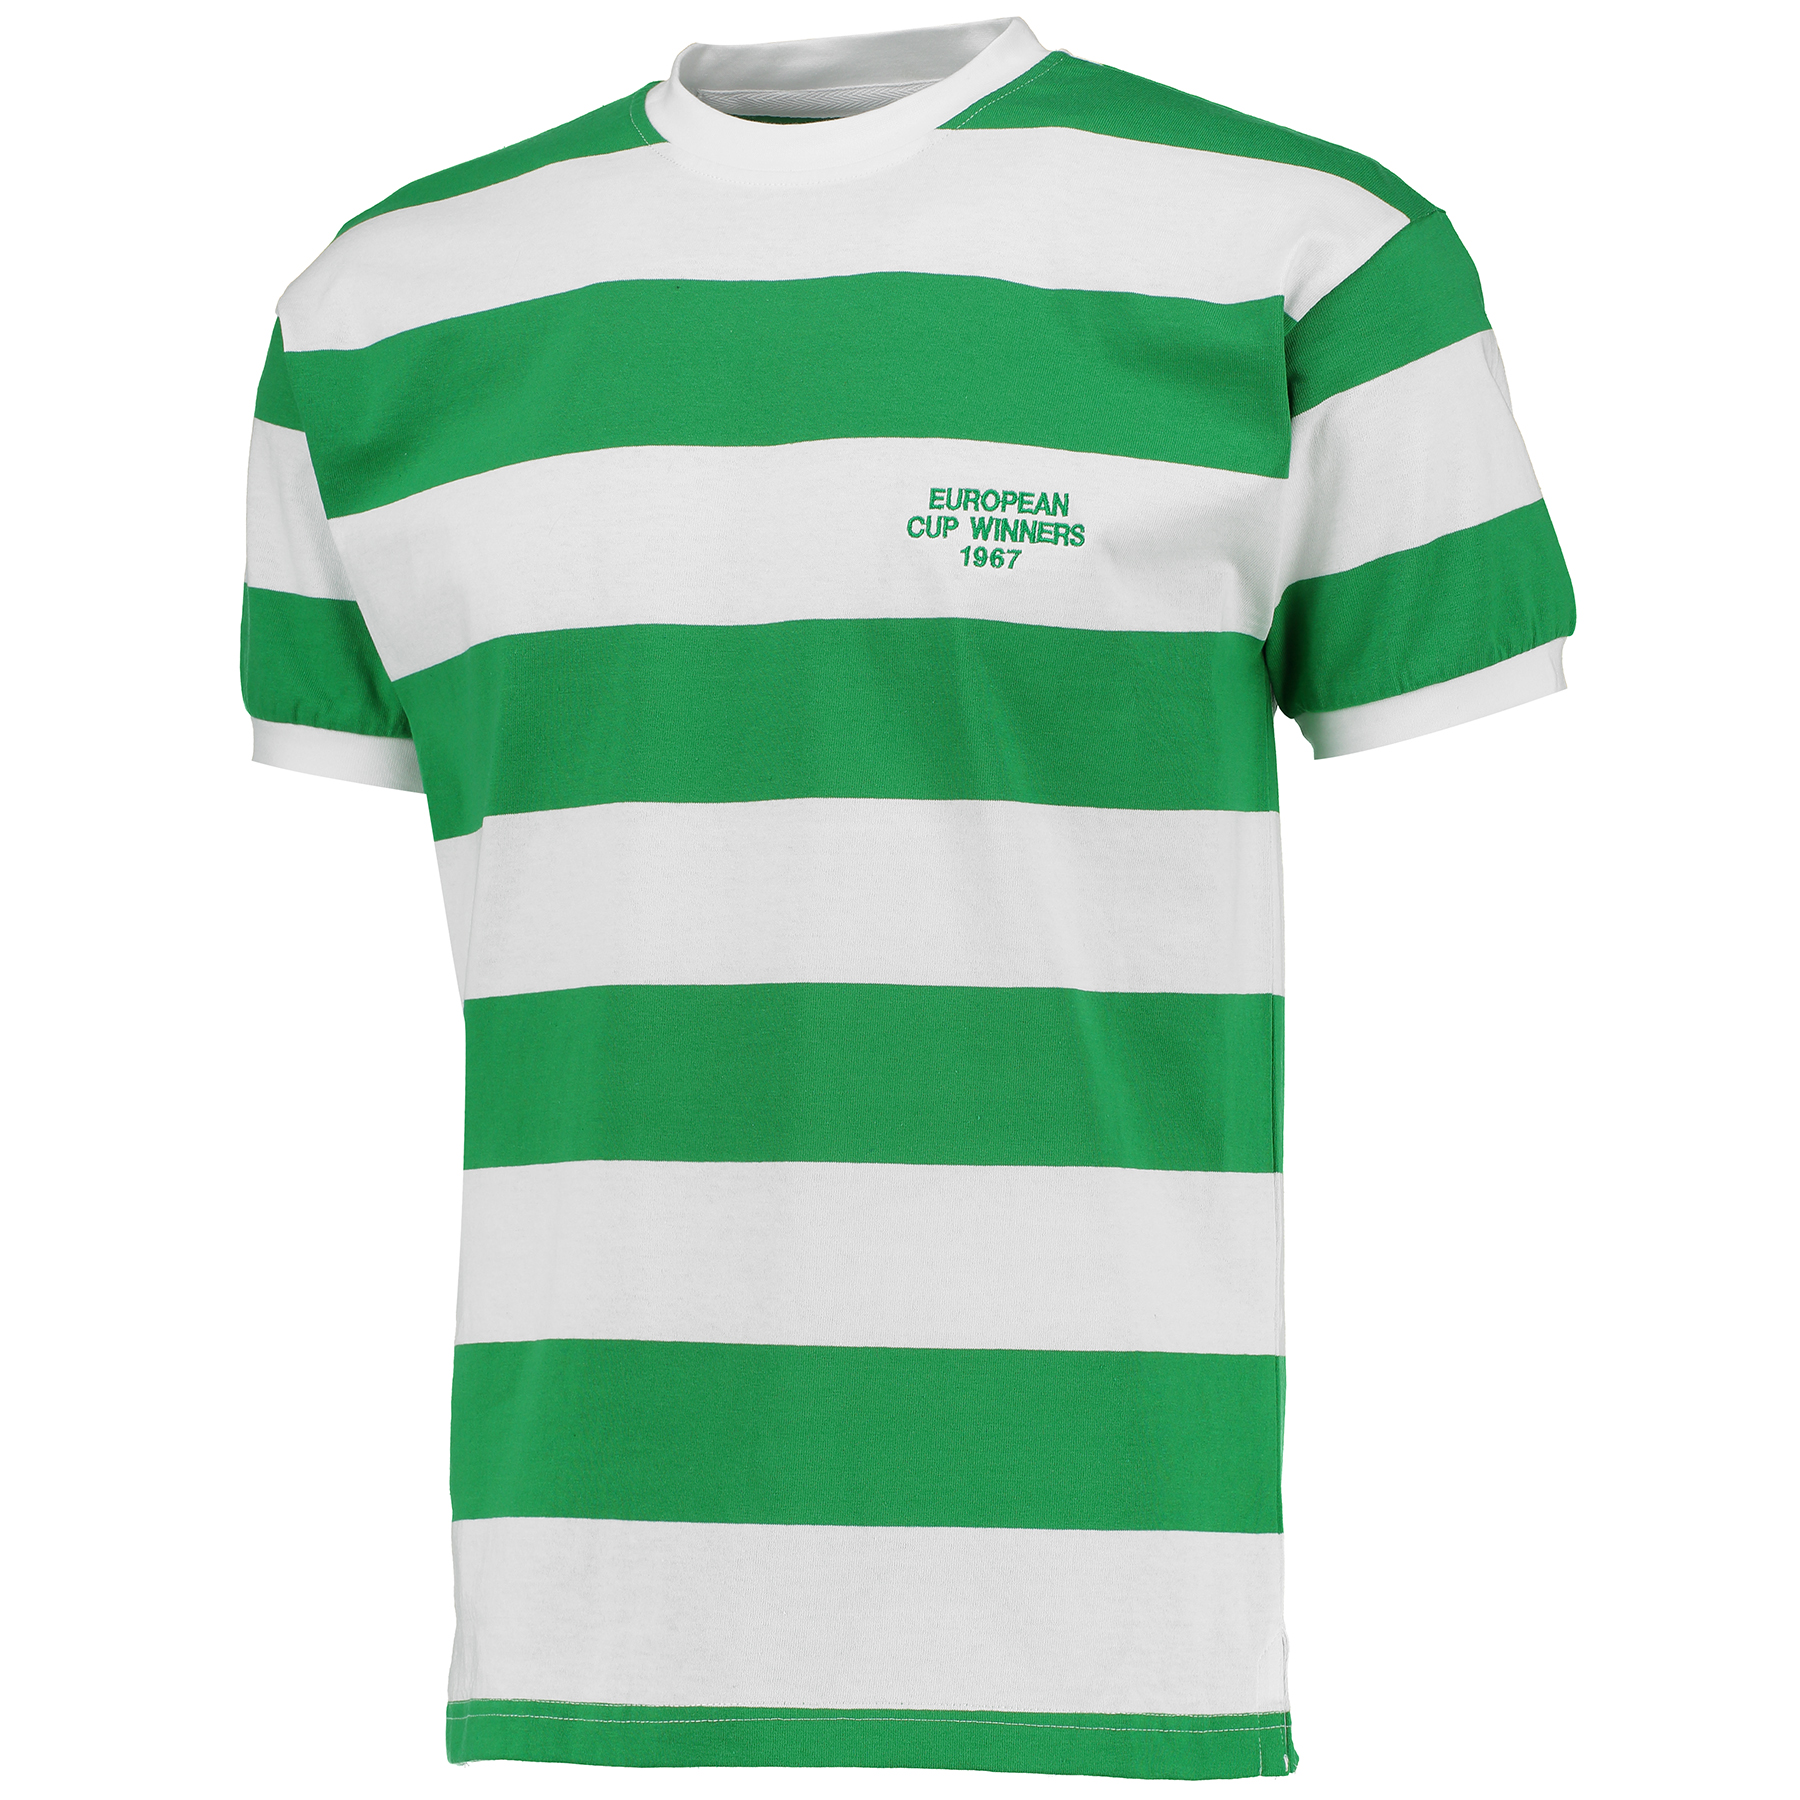 Celtic 1967 European Cup Winners shirt